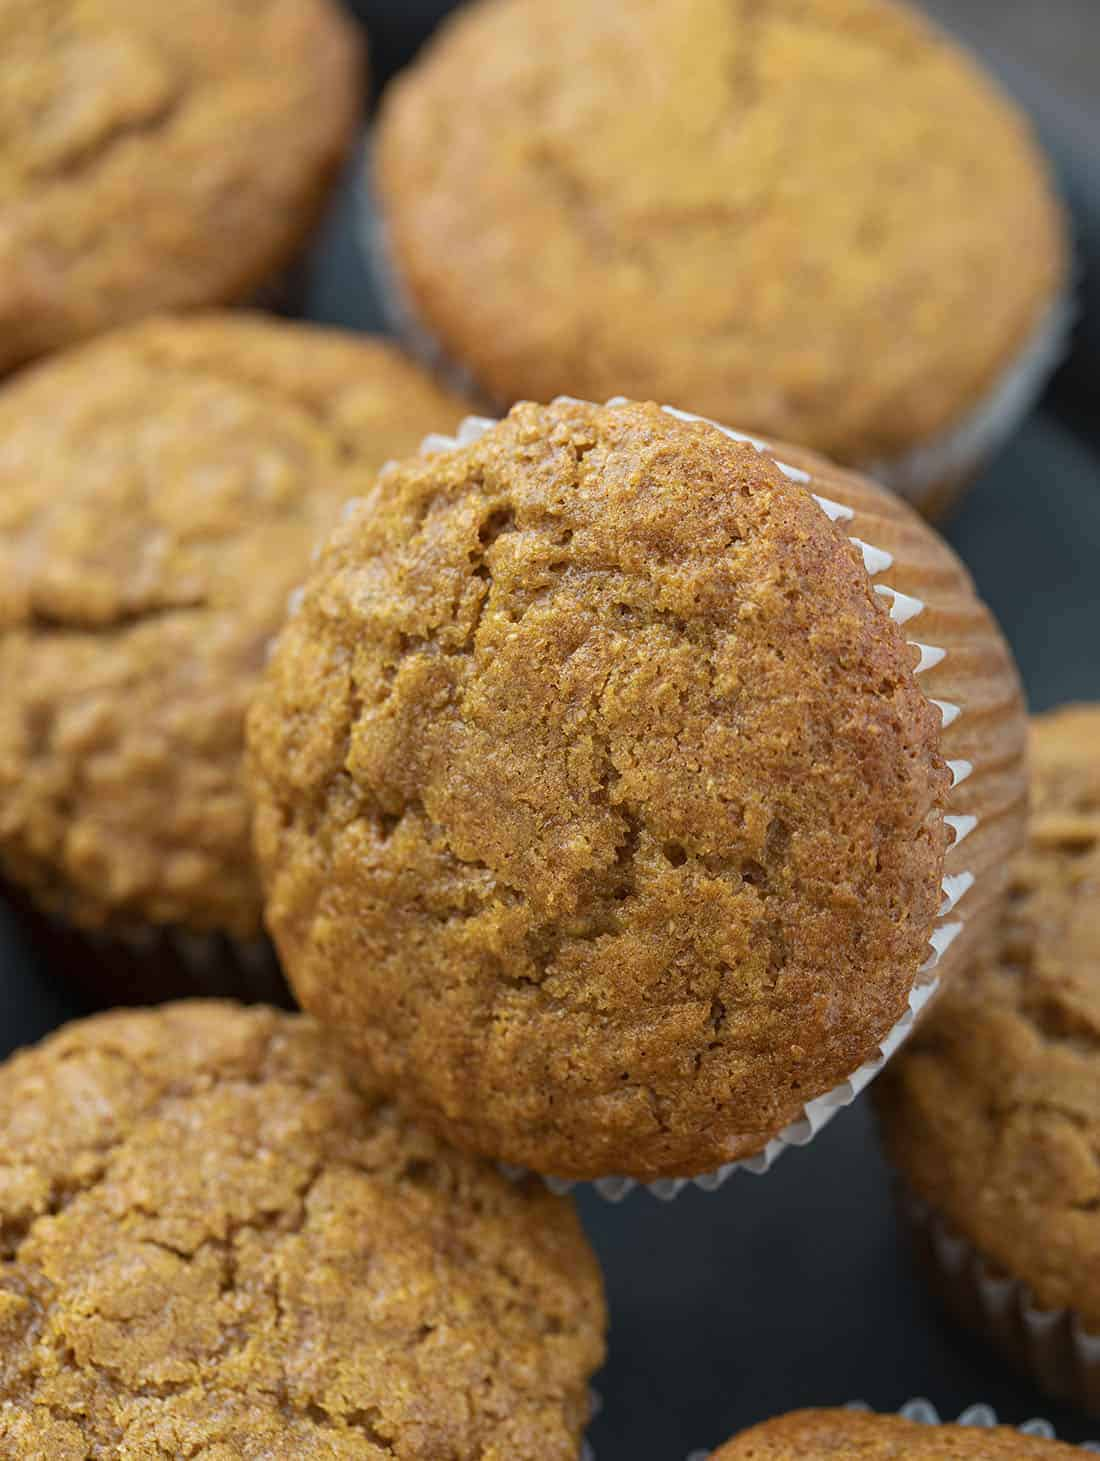 Bran Muffin Stacked on Its Side